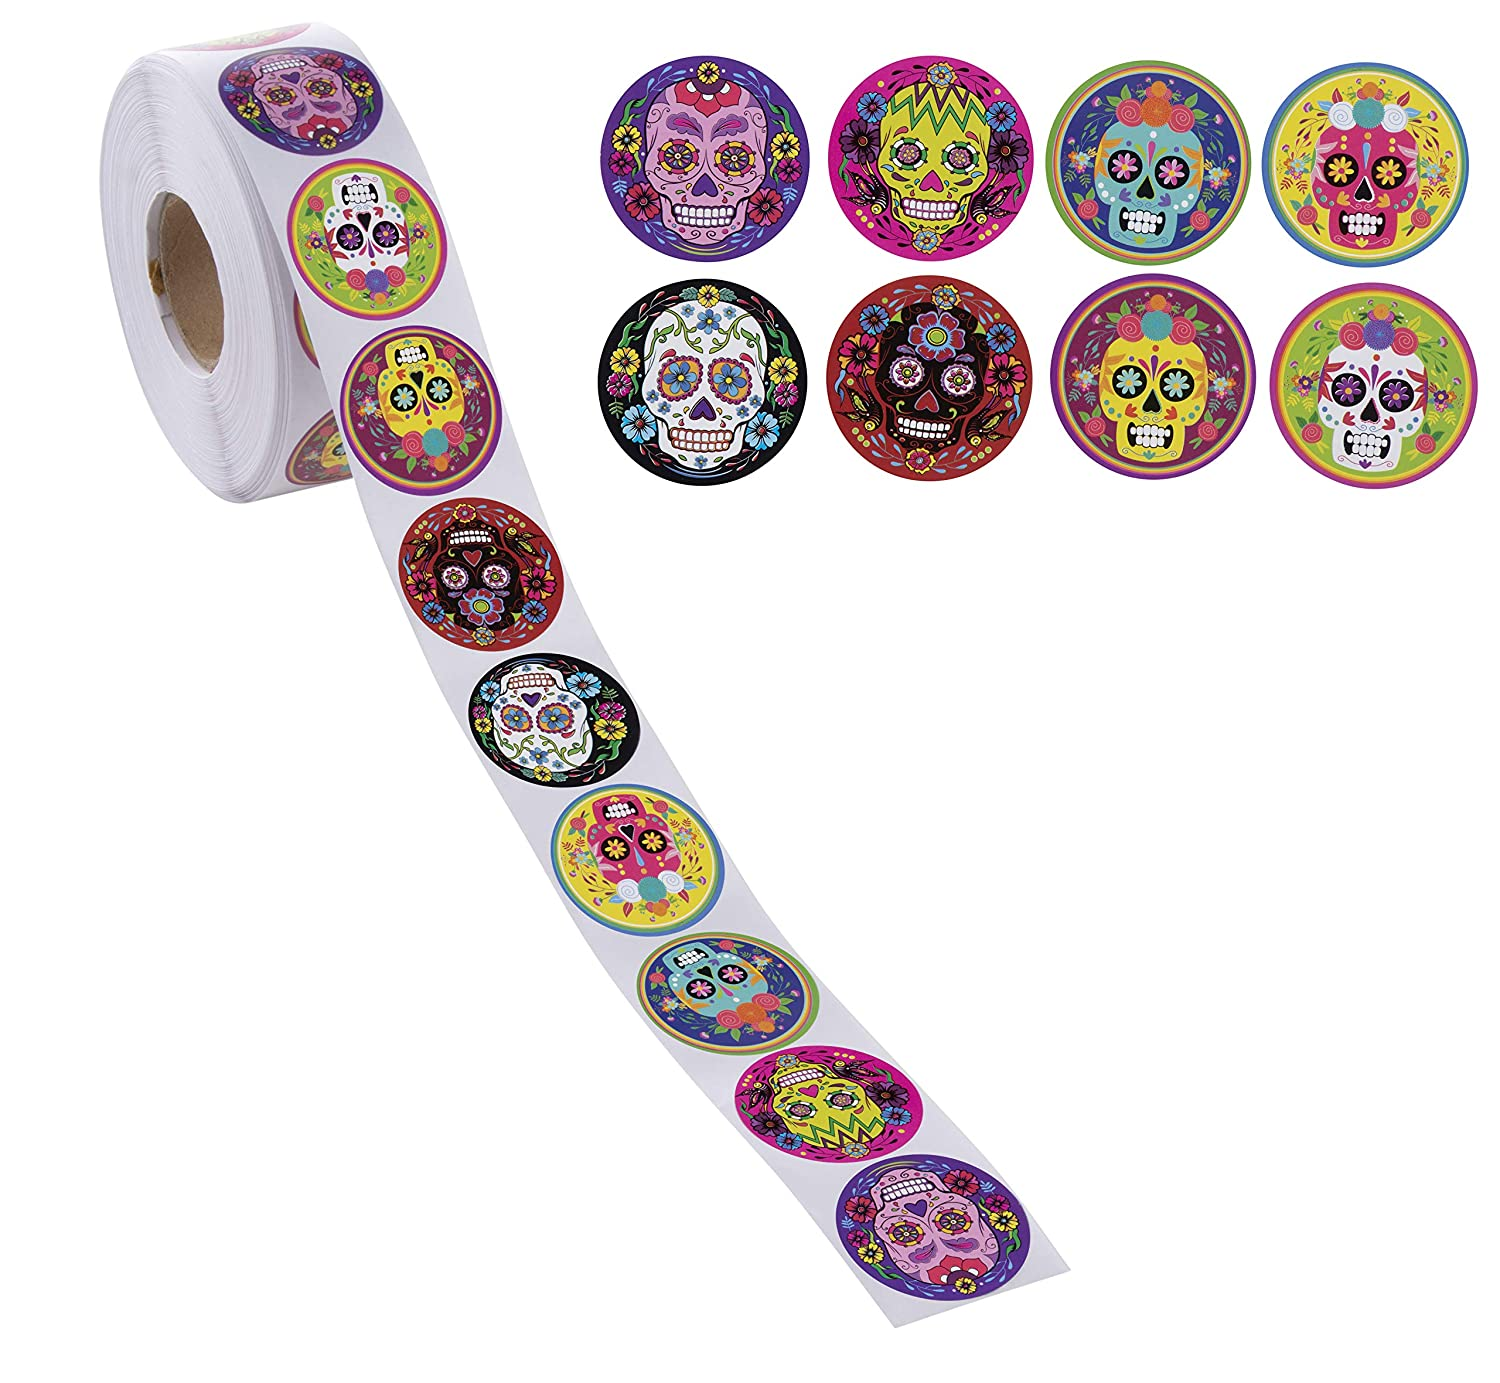 Dia de Los Muertos Stickers - 1000-Count Day of The Dead Sticker Roll for Kids, Mexican Sugar Skull Stickers for Students, Holiday Party Supplies, Goodie Bags, 8 Designs, 1.5 Inches Diameter Juvale